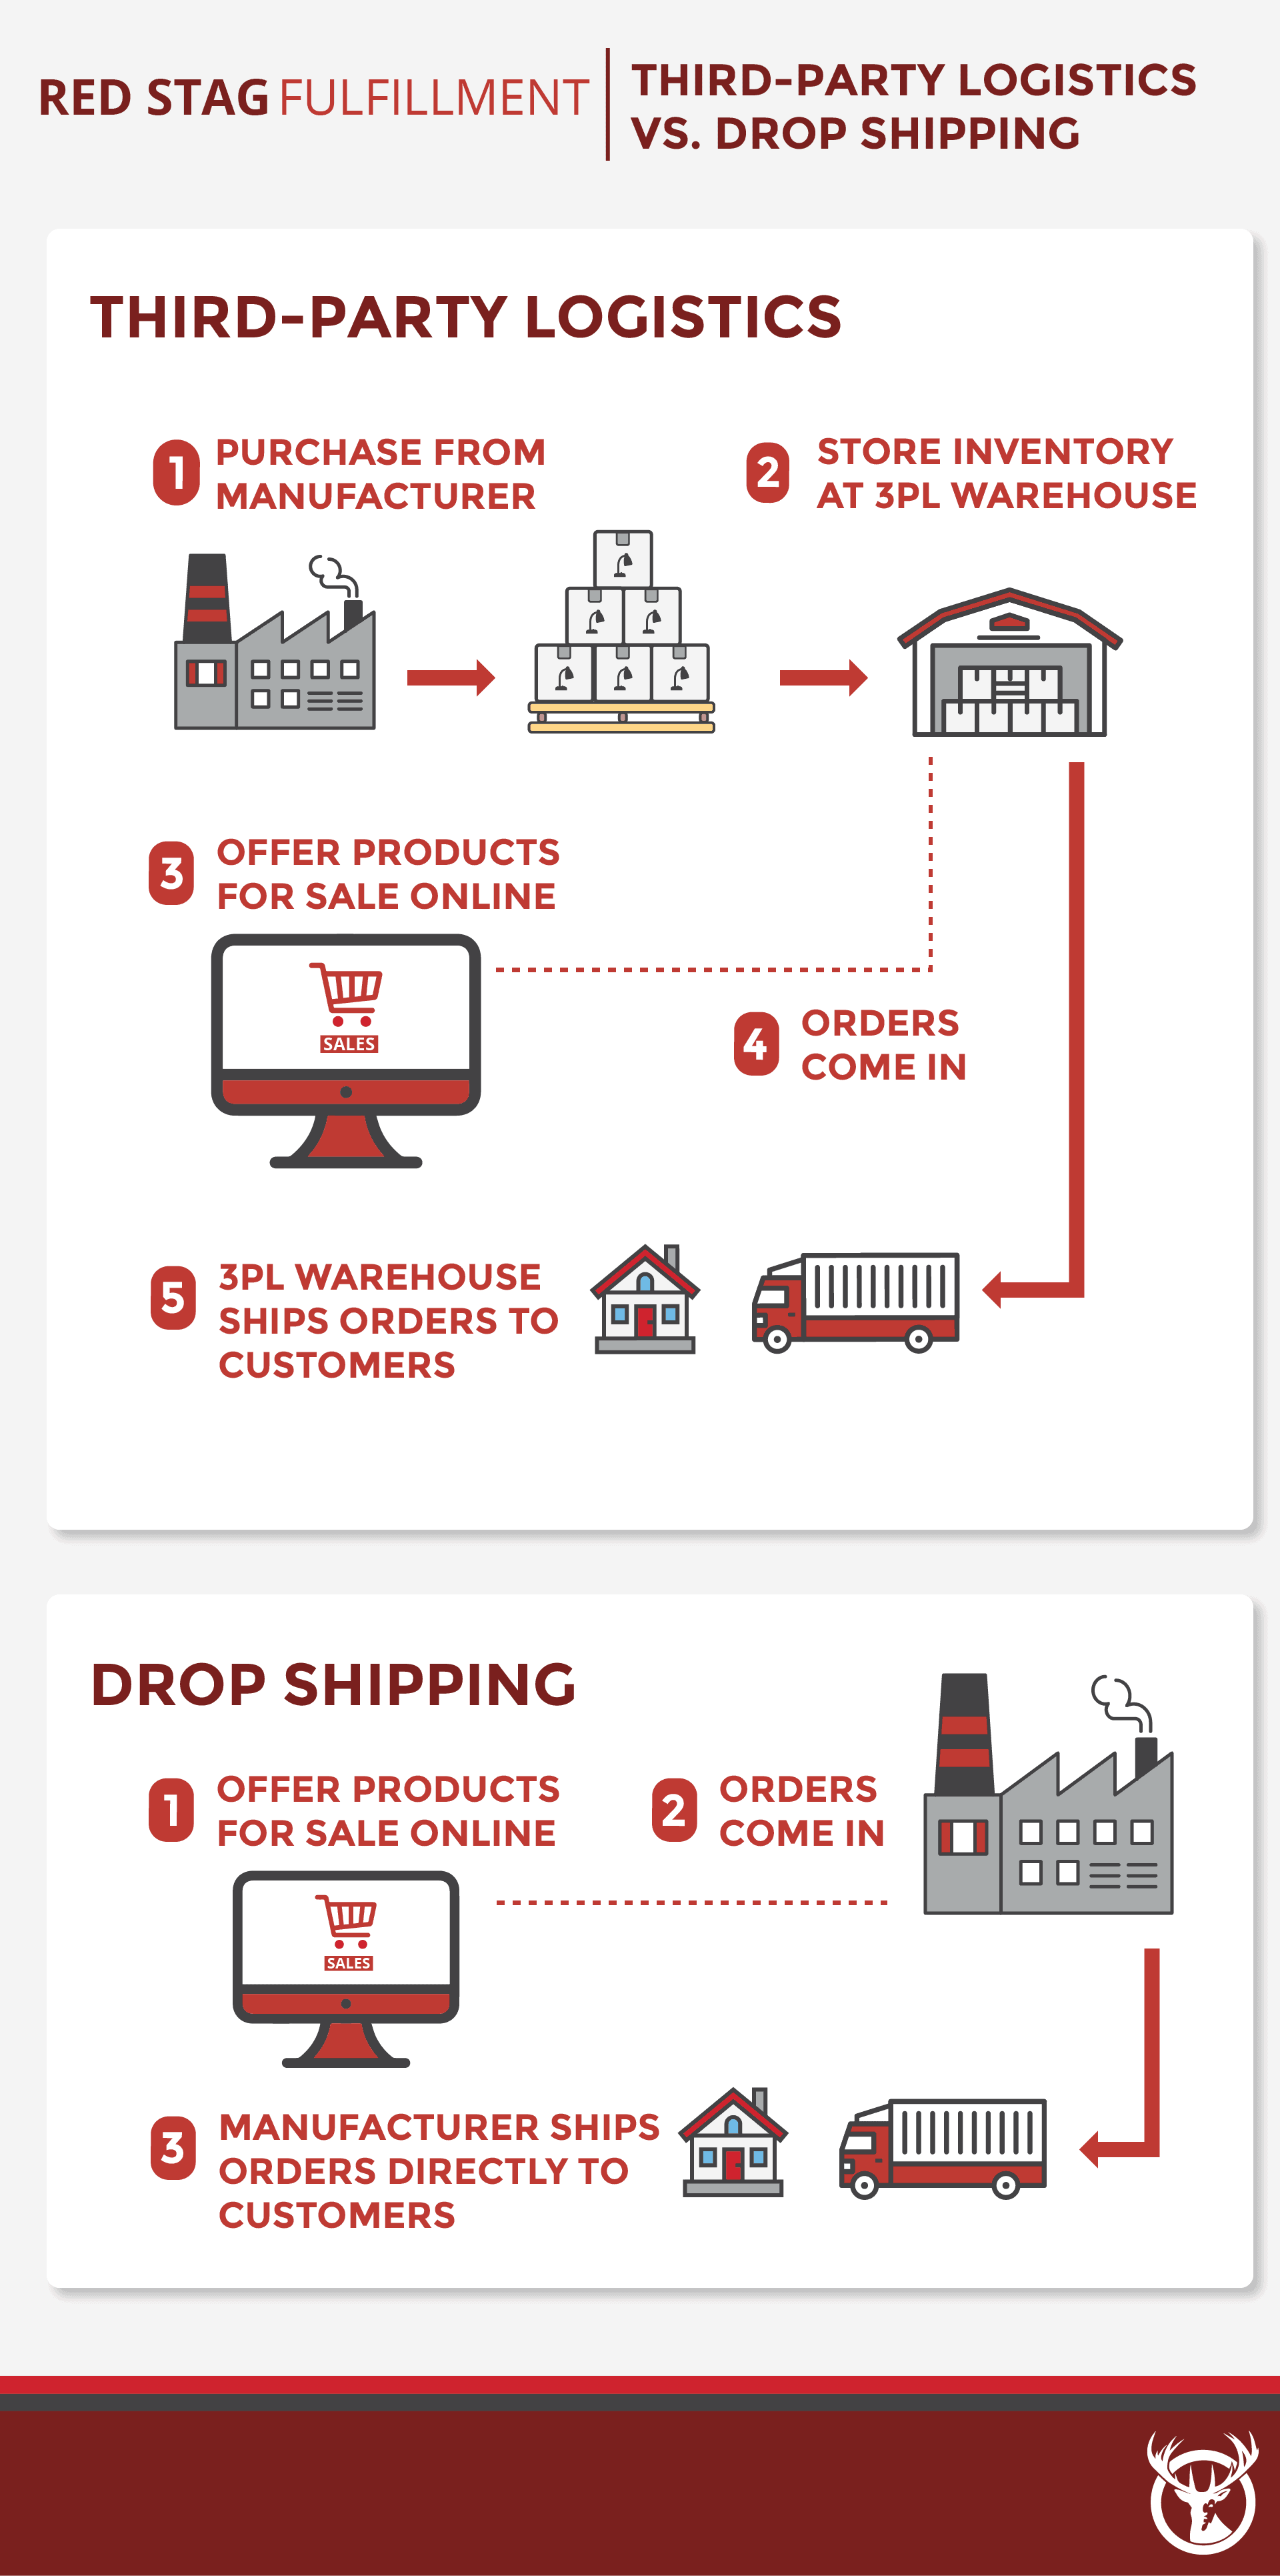 3PL vs. Drop Shipping